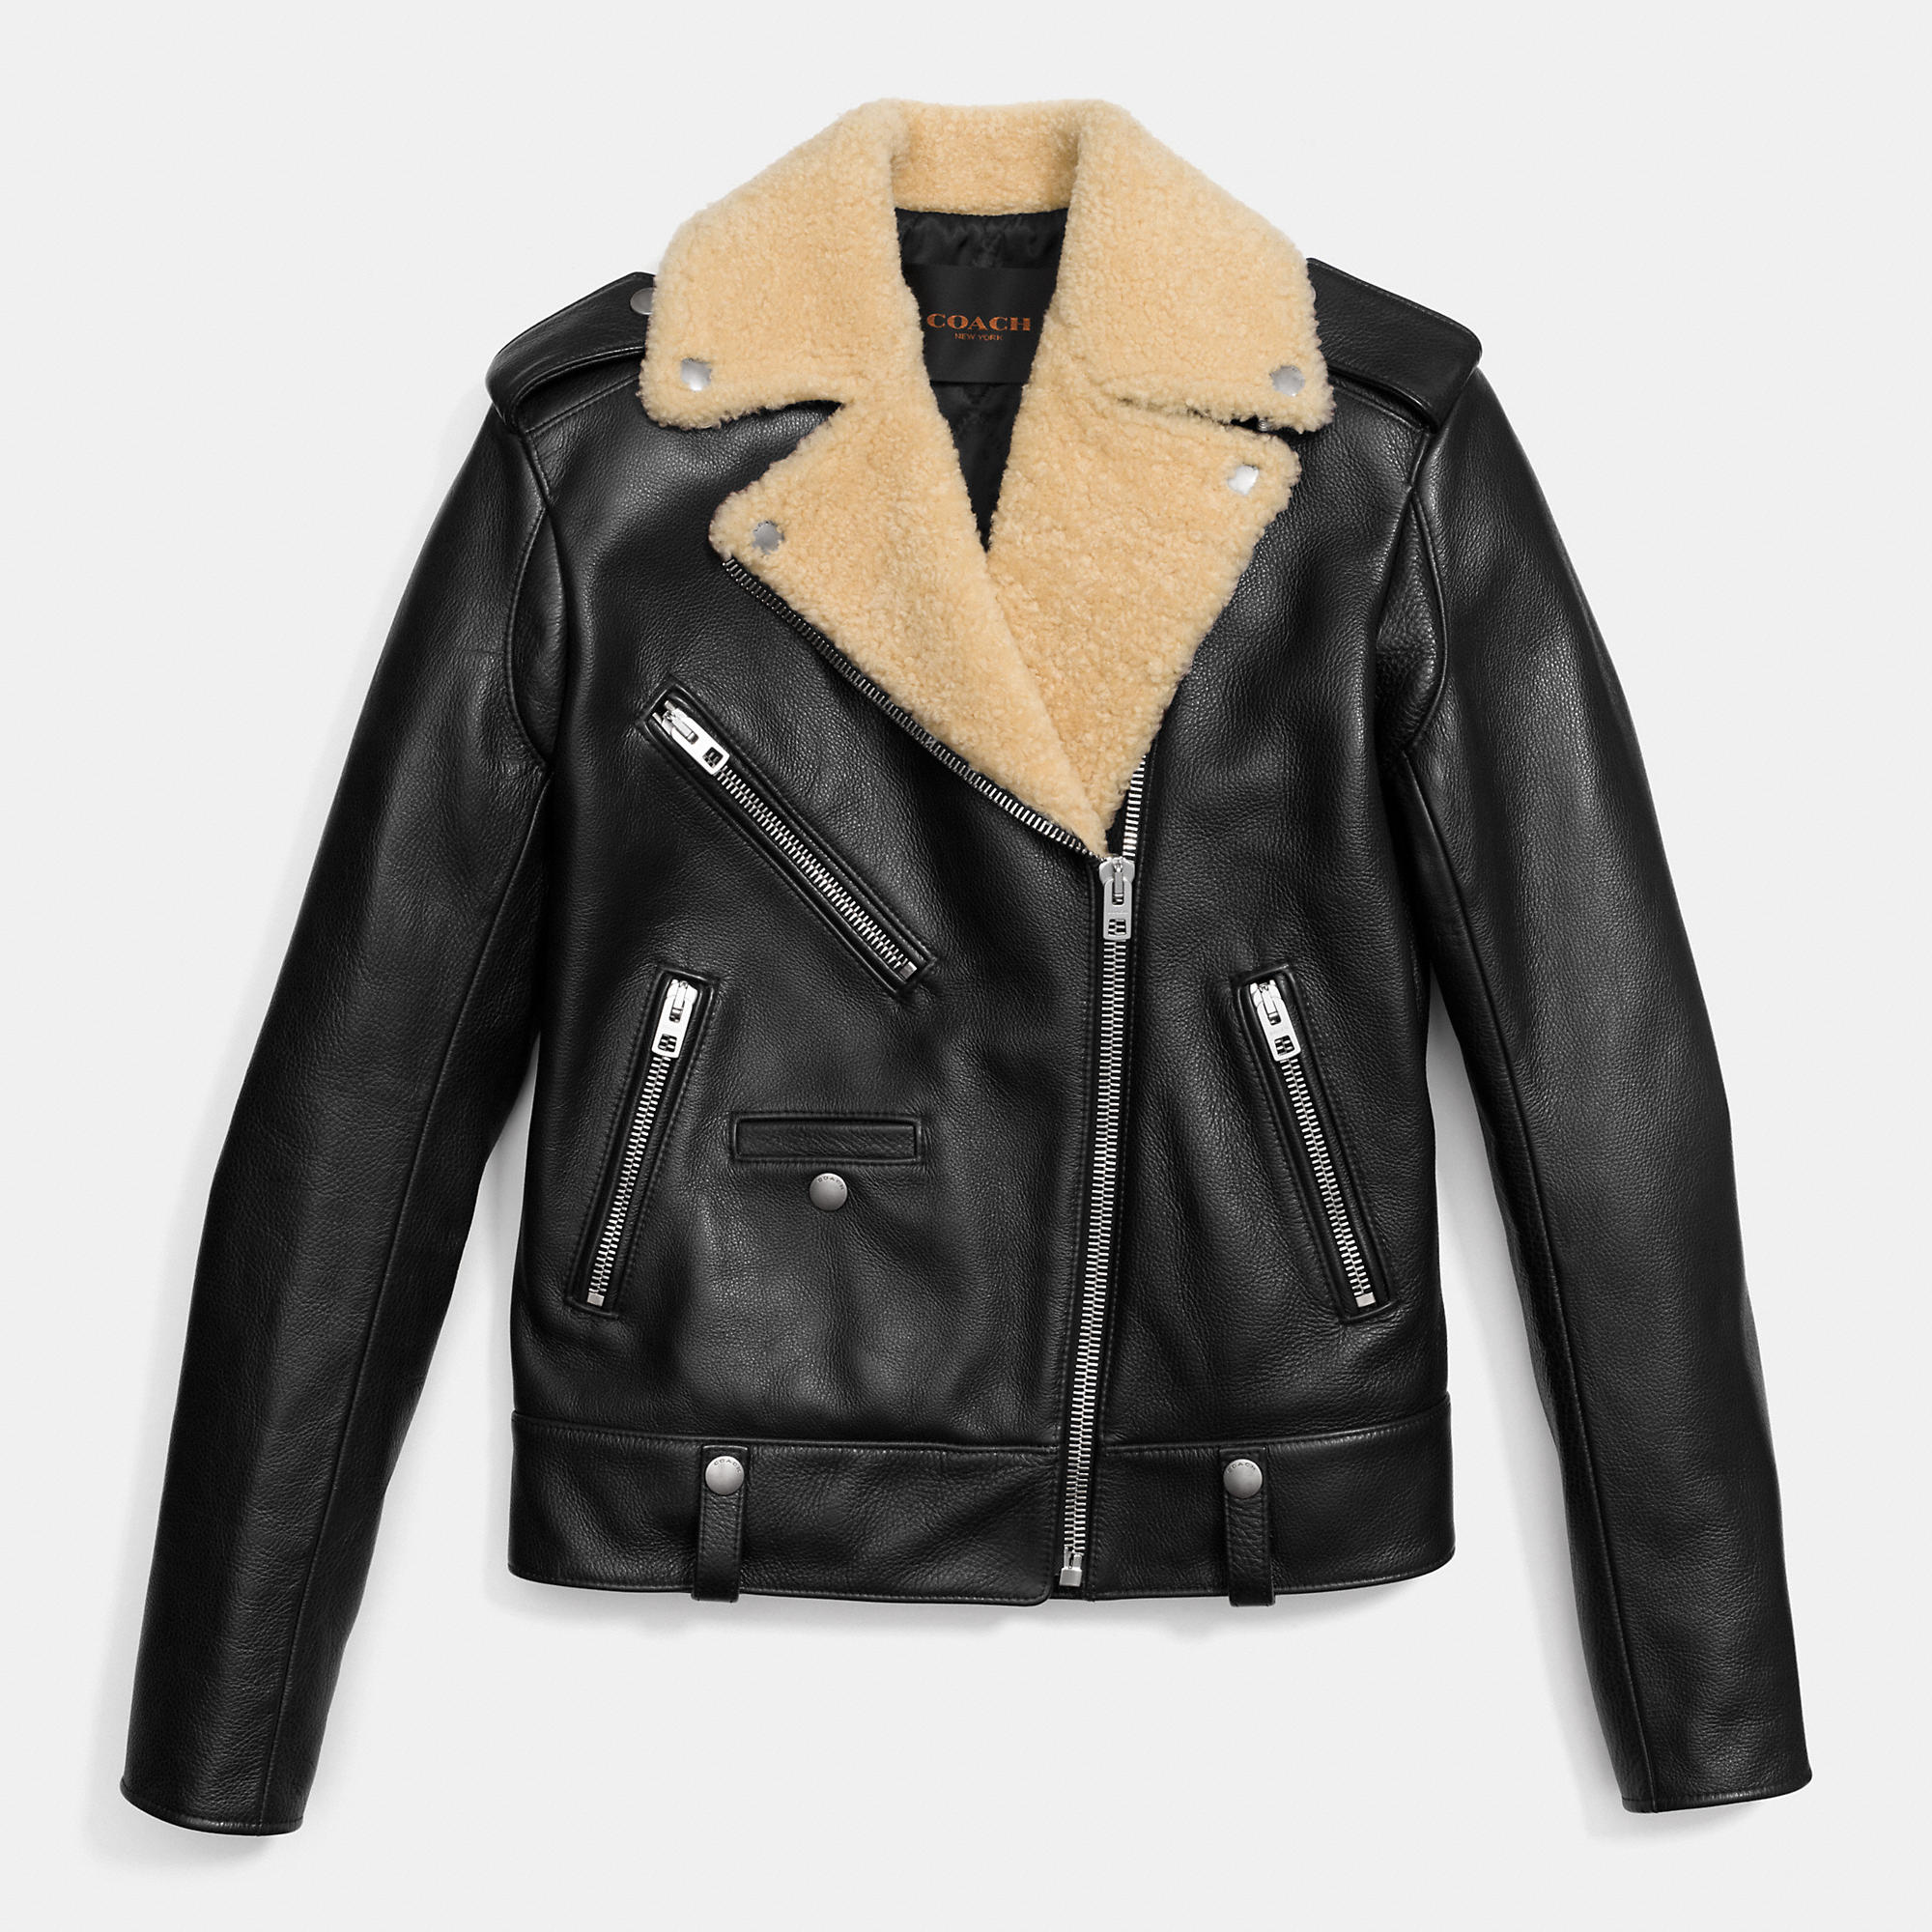 Momo Grow Big Boys Black Faux Leather Motorcycle Jacket (XS & XL) Sold by Luxury Lane. $ $ Richie House Big Boys Brown Fake Leather Details Padding Jacket Sold by Sophias Style Boutique Inc. $ $ Richie House Little Boys Red Fake Leather Details Padding Jacket